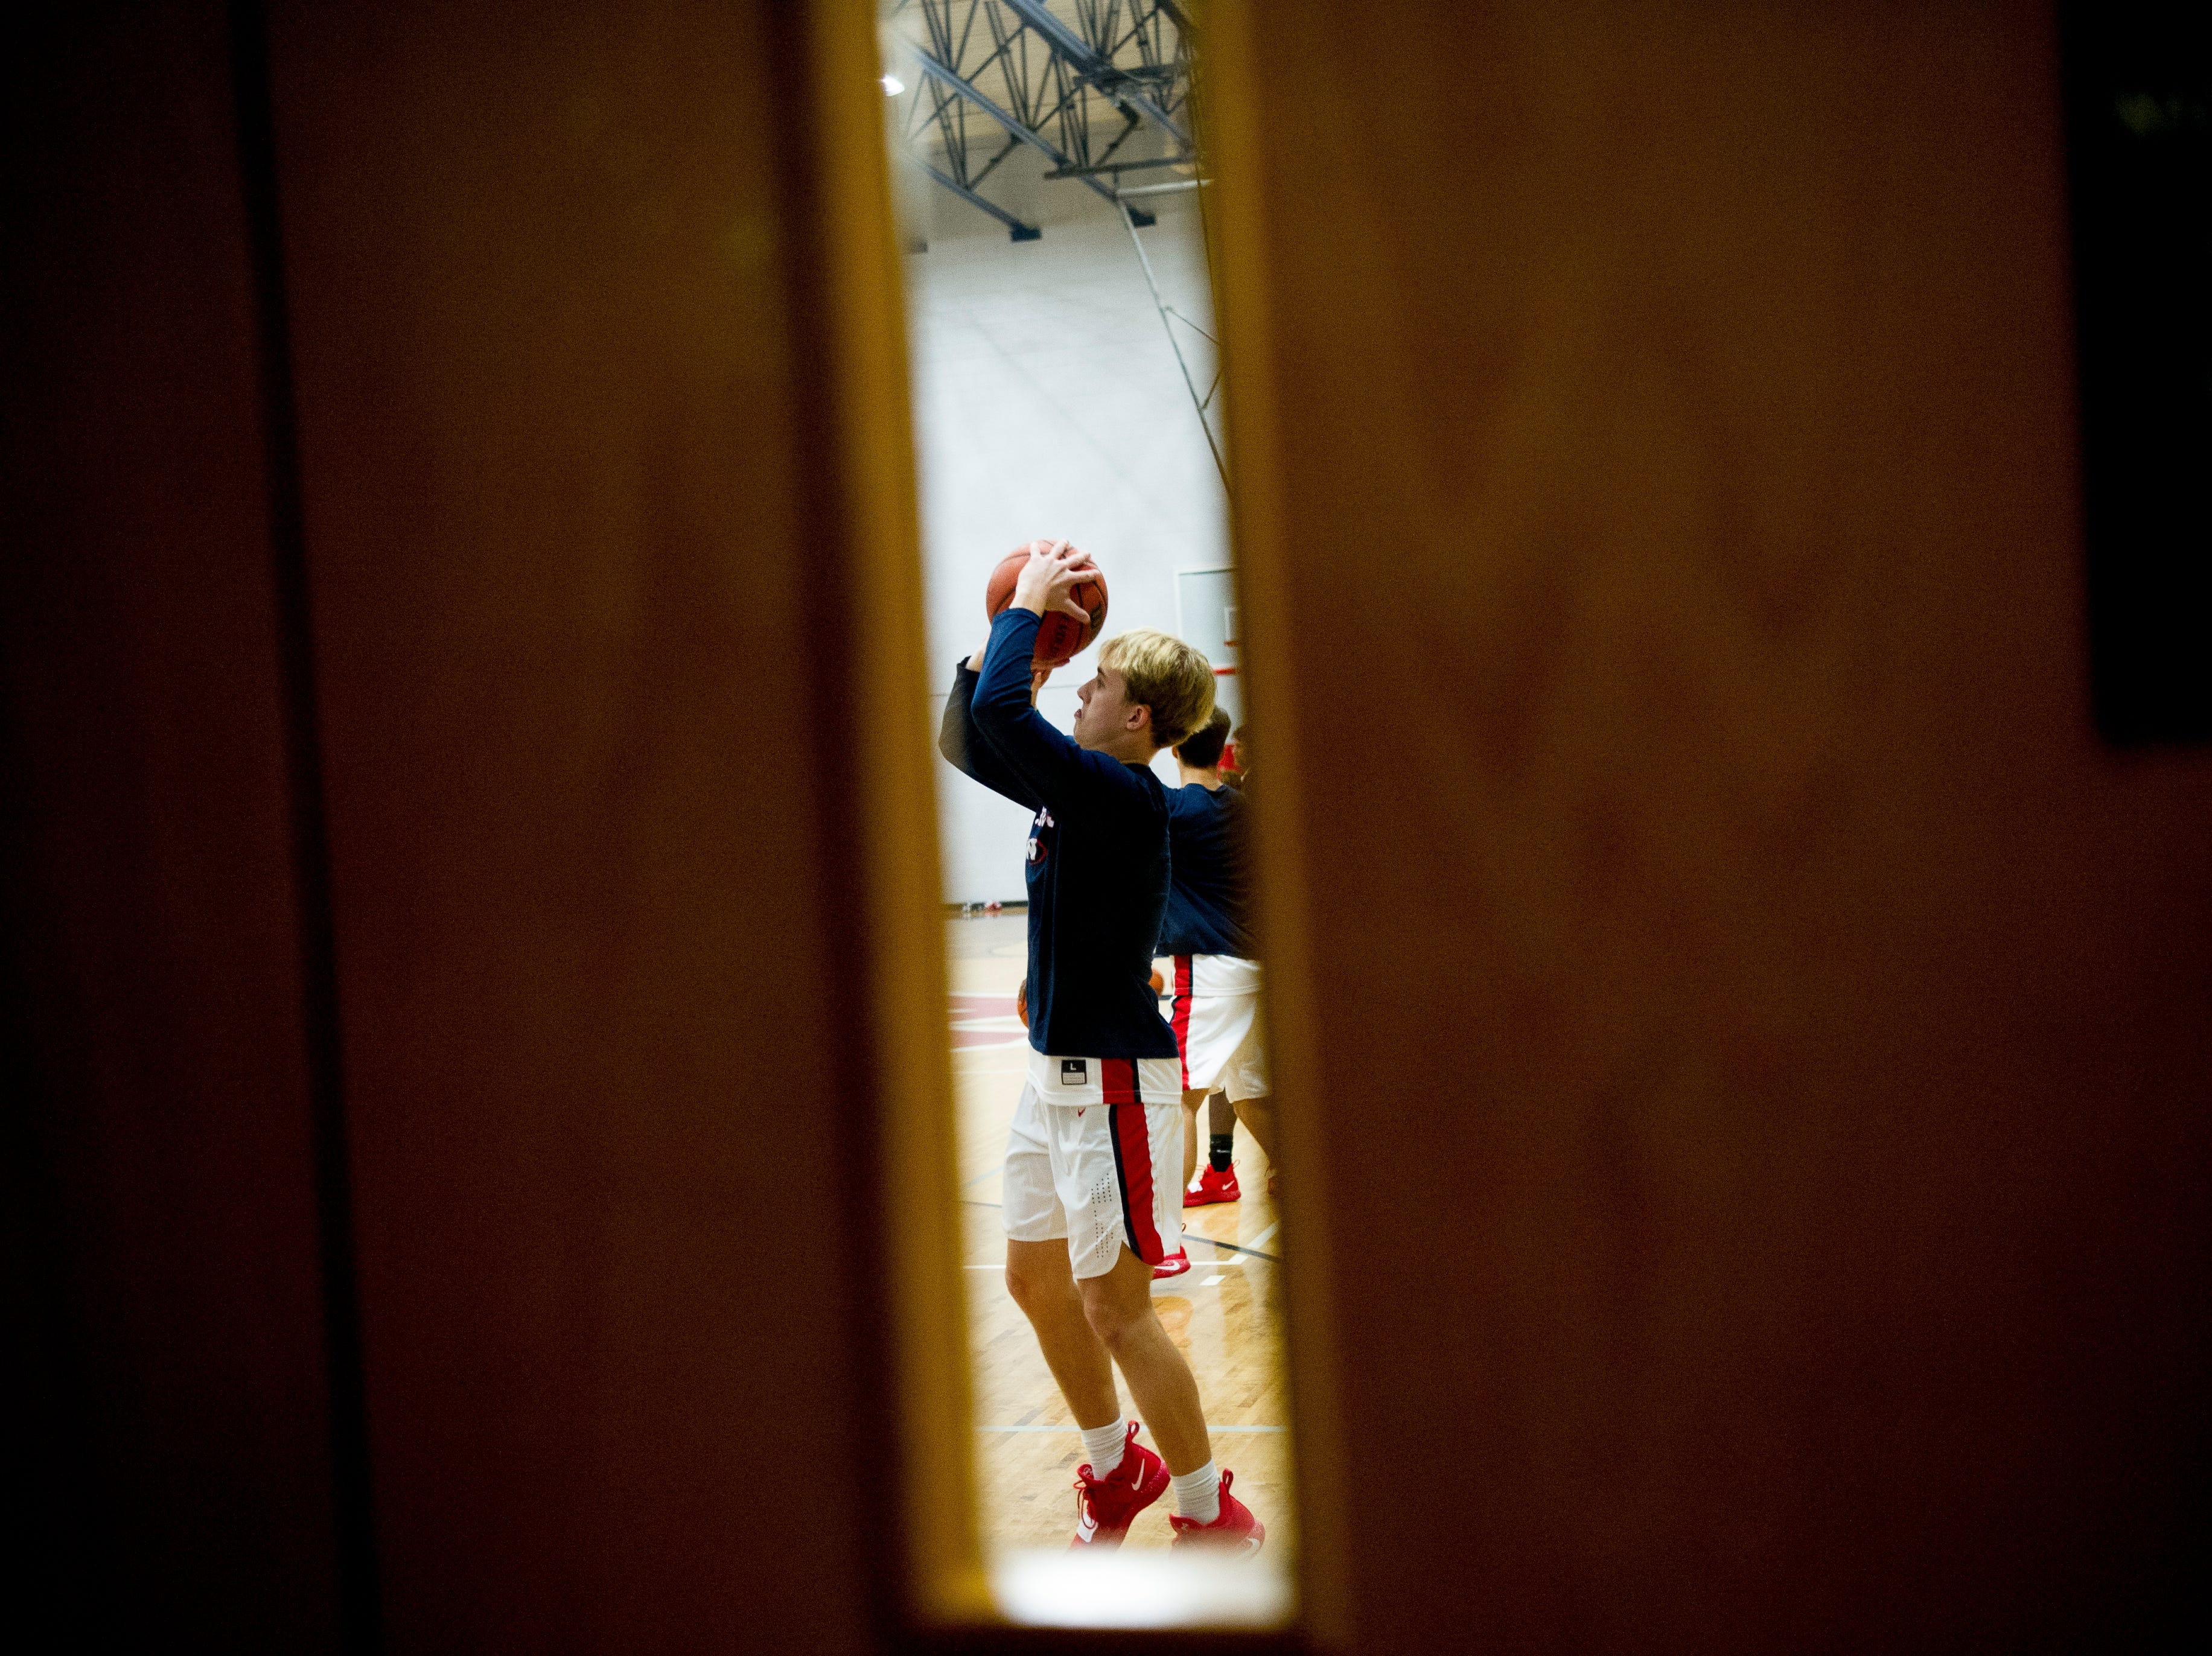 West players warm up during a game between West and Webb at West High School in Knoxville, Tennessee on Friday, January 4, 2019.